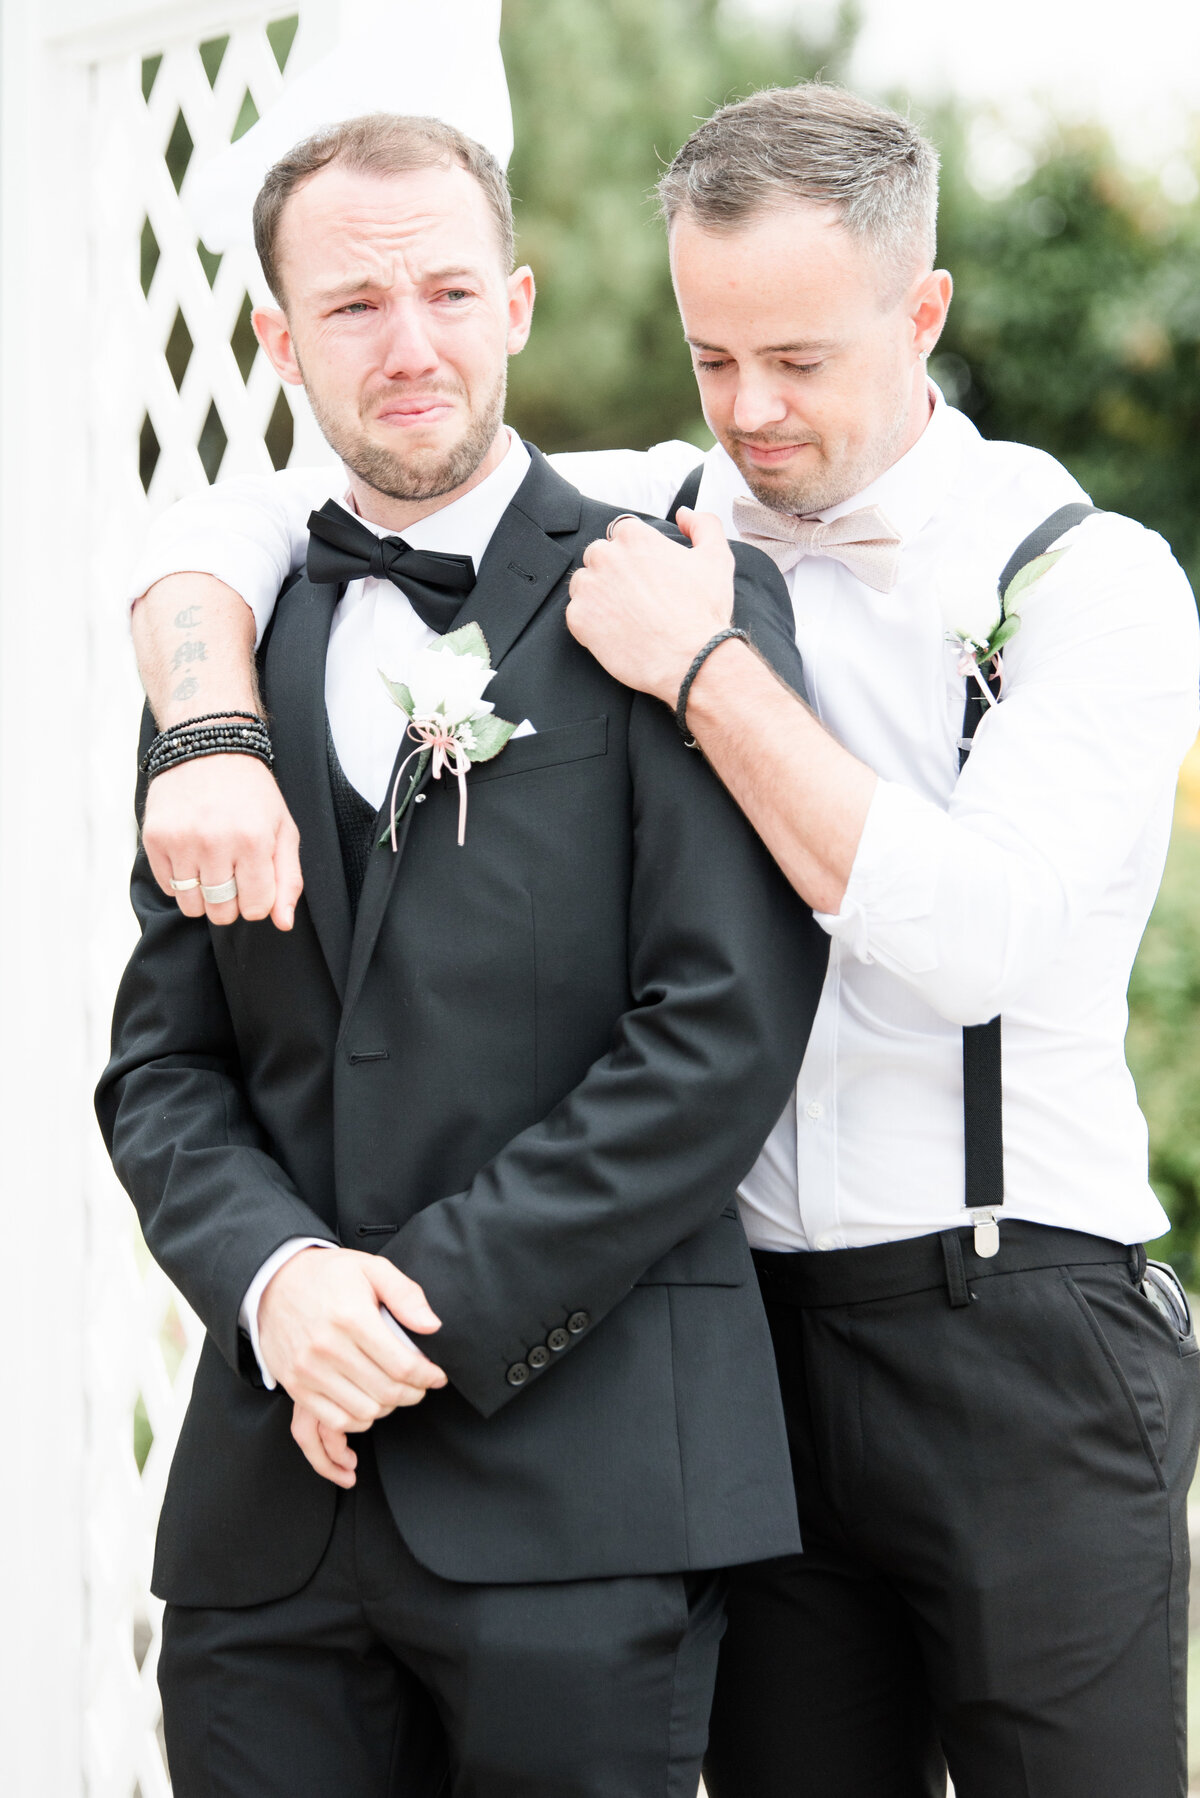 A groom tears up as he watches his bride down the aisle is comforted by his best man